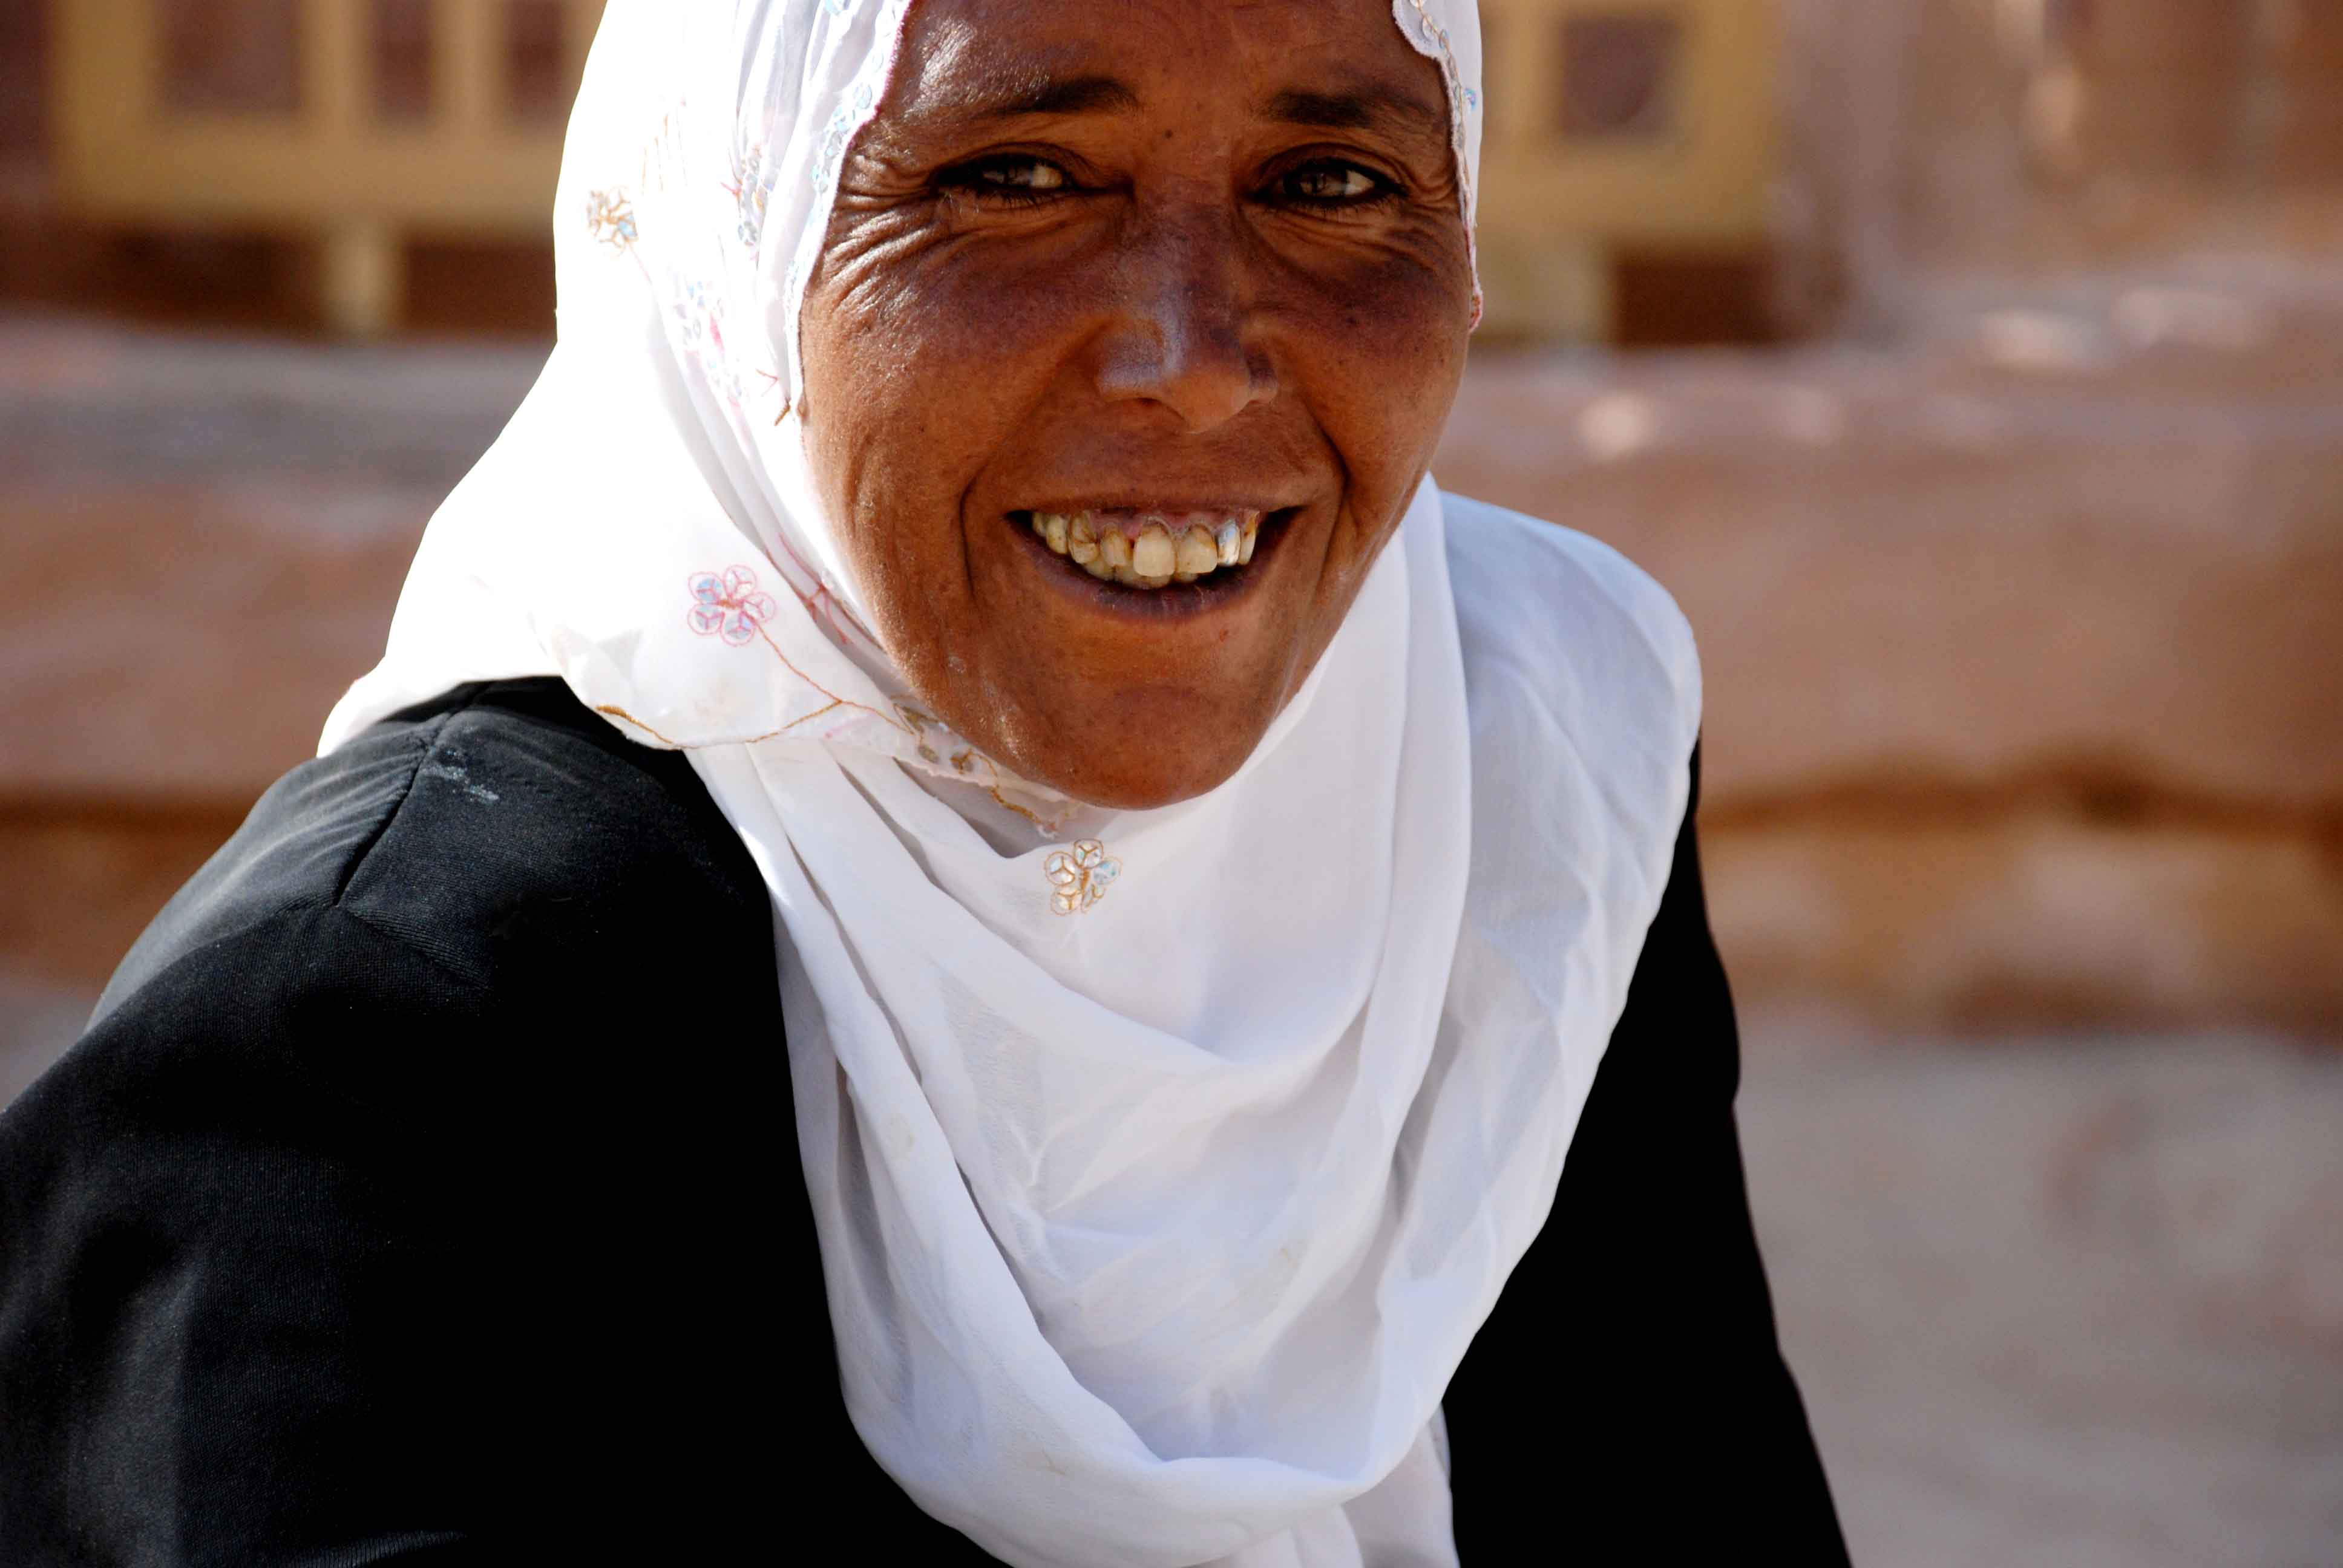 Tremendous Photographic Tales Of The Middle East Hermoine Macuras Faces Of Short Hairstyles Gunalazisus